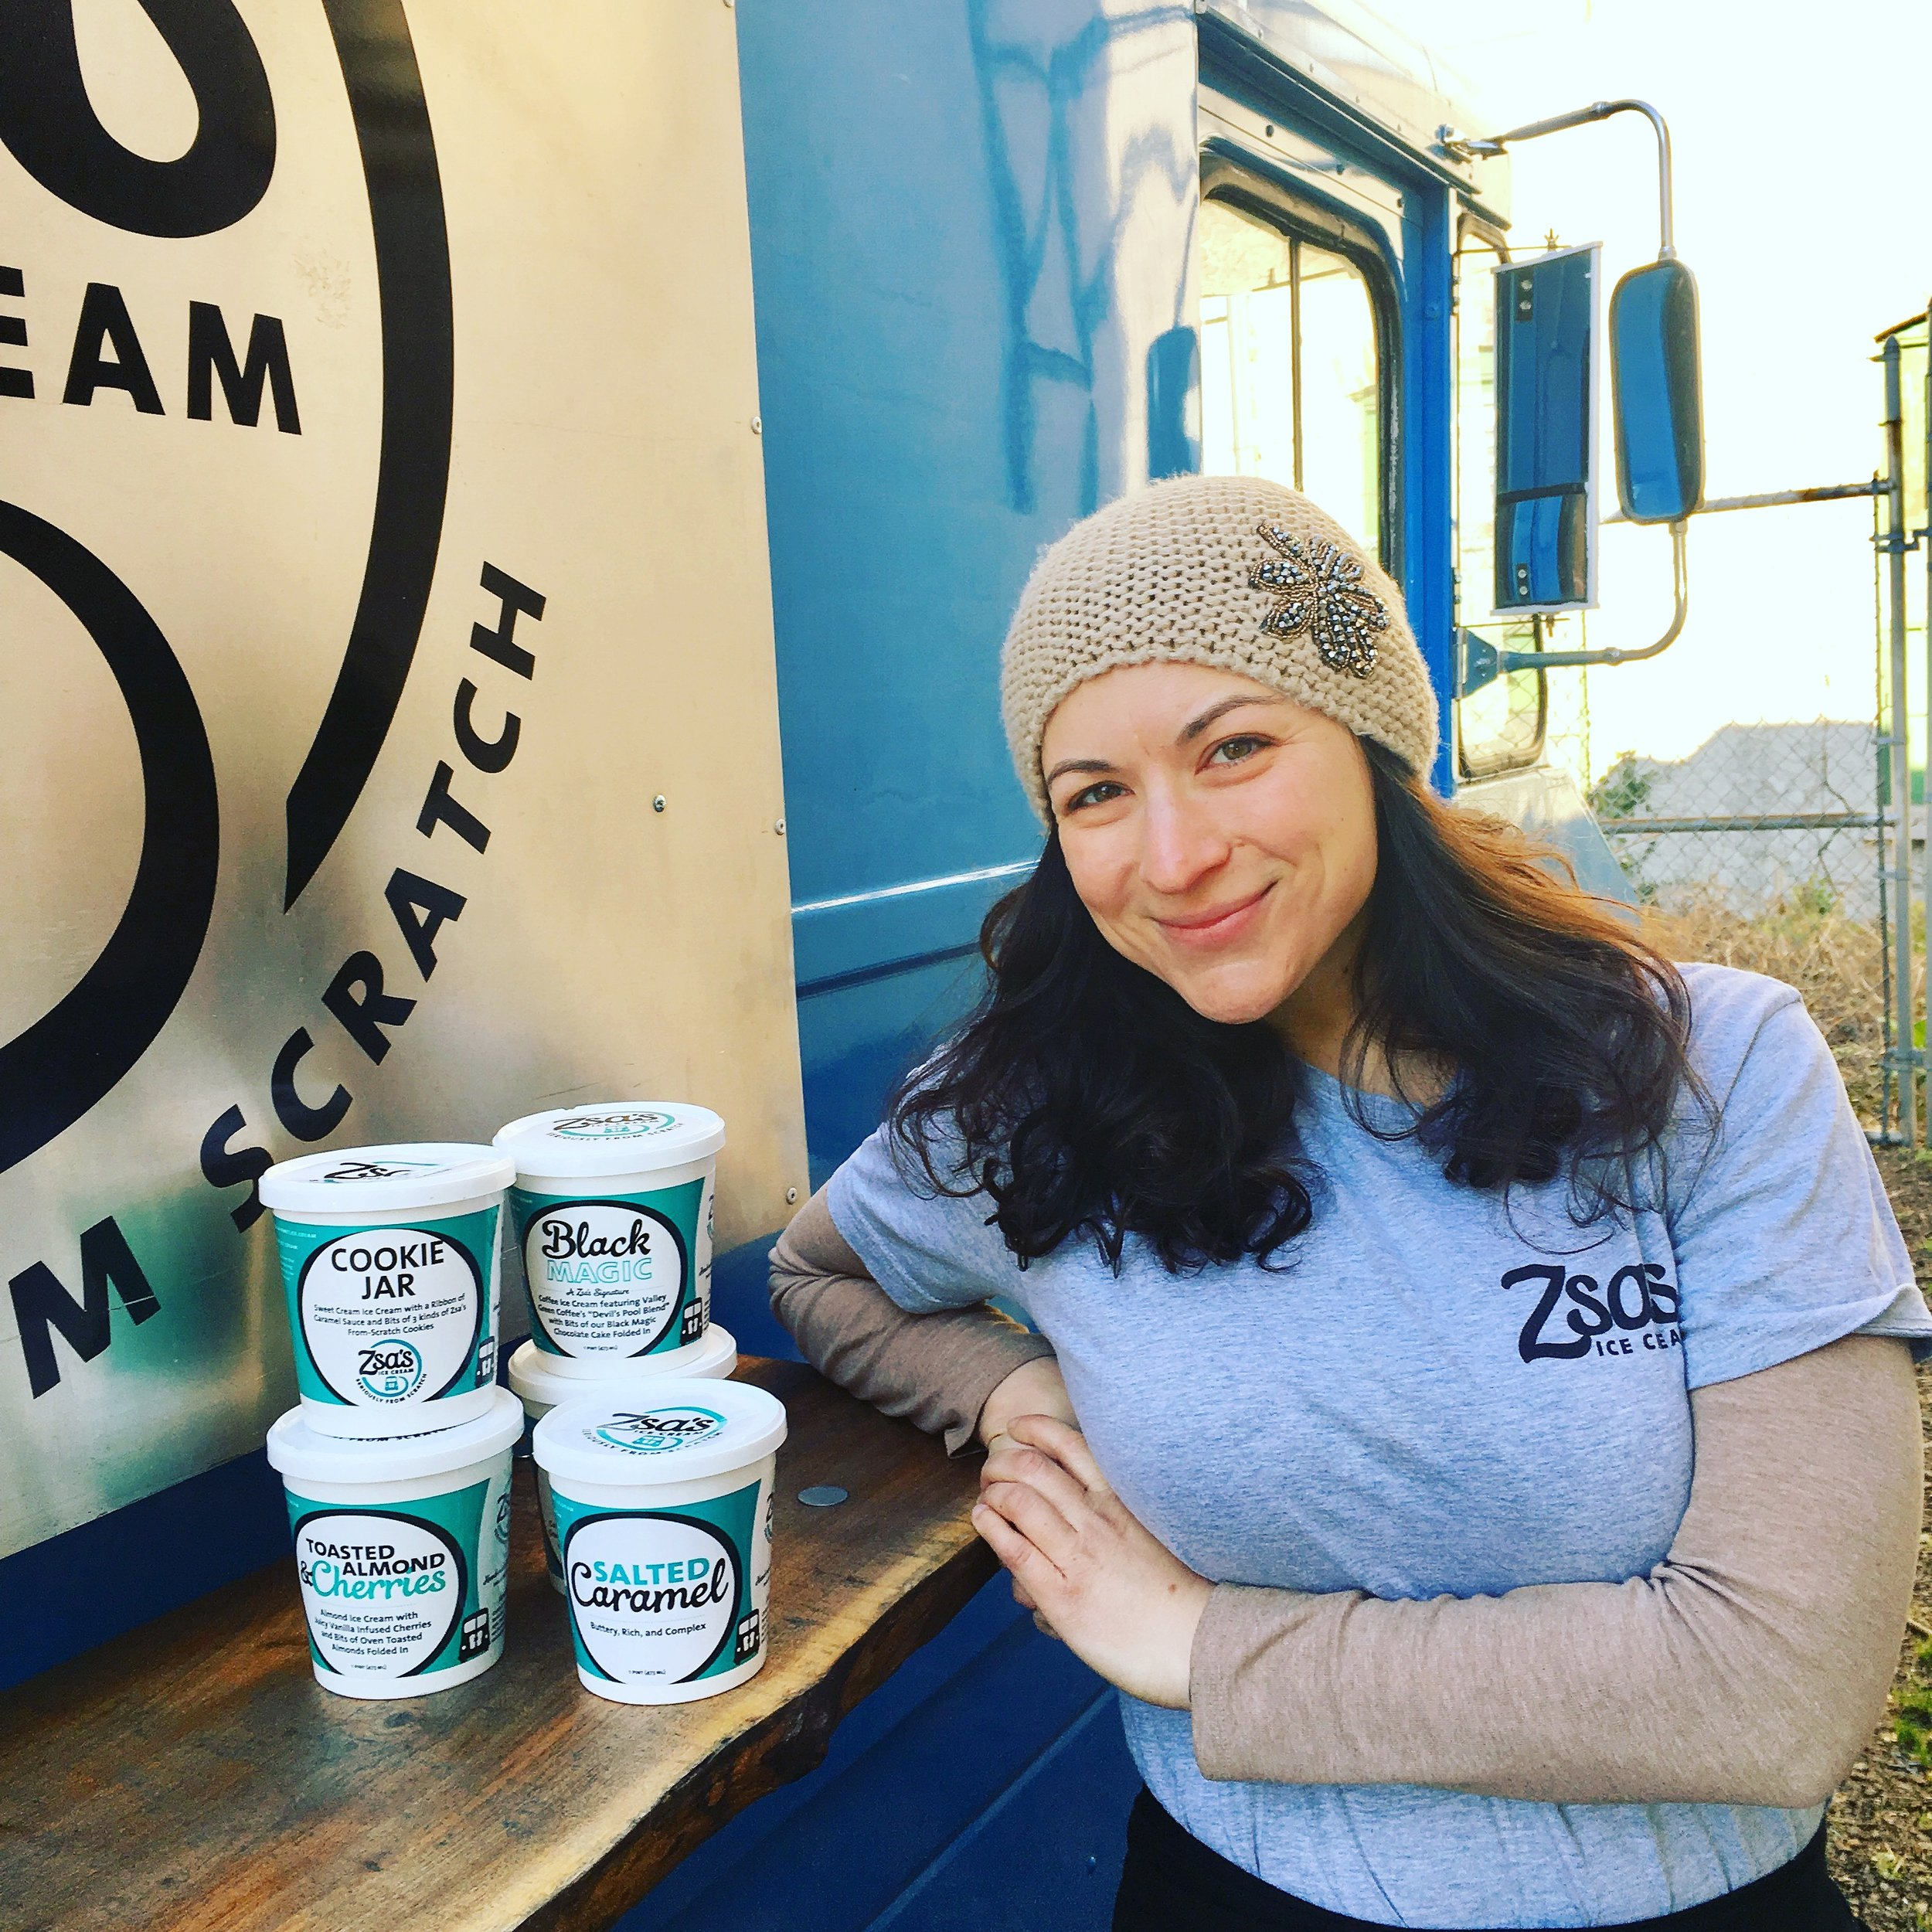 Zsa's Ice Cream - Joined April 2017Received a $12,000 loan for labeling and packaging.Zsa's is owned by Danielle Jowdy, and is known for producing